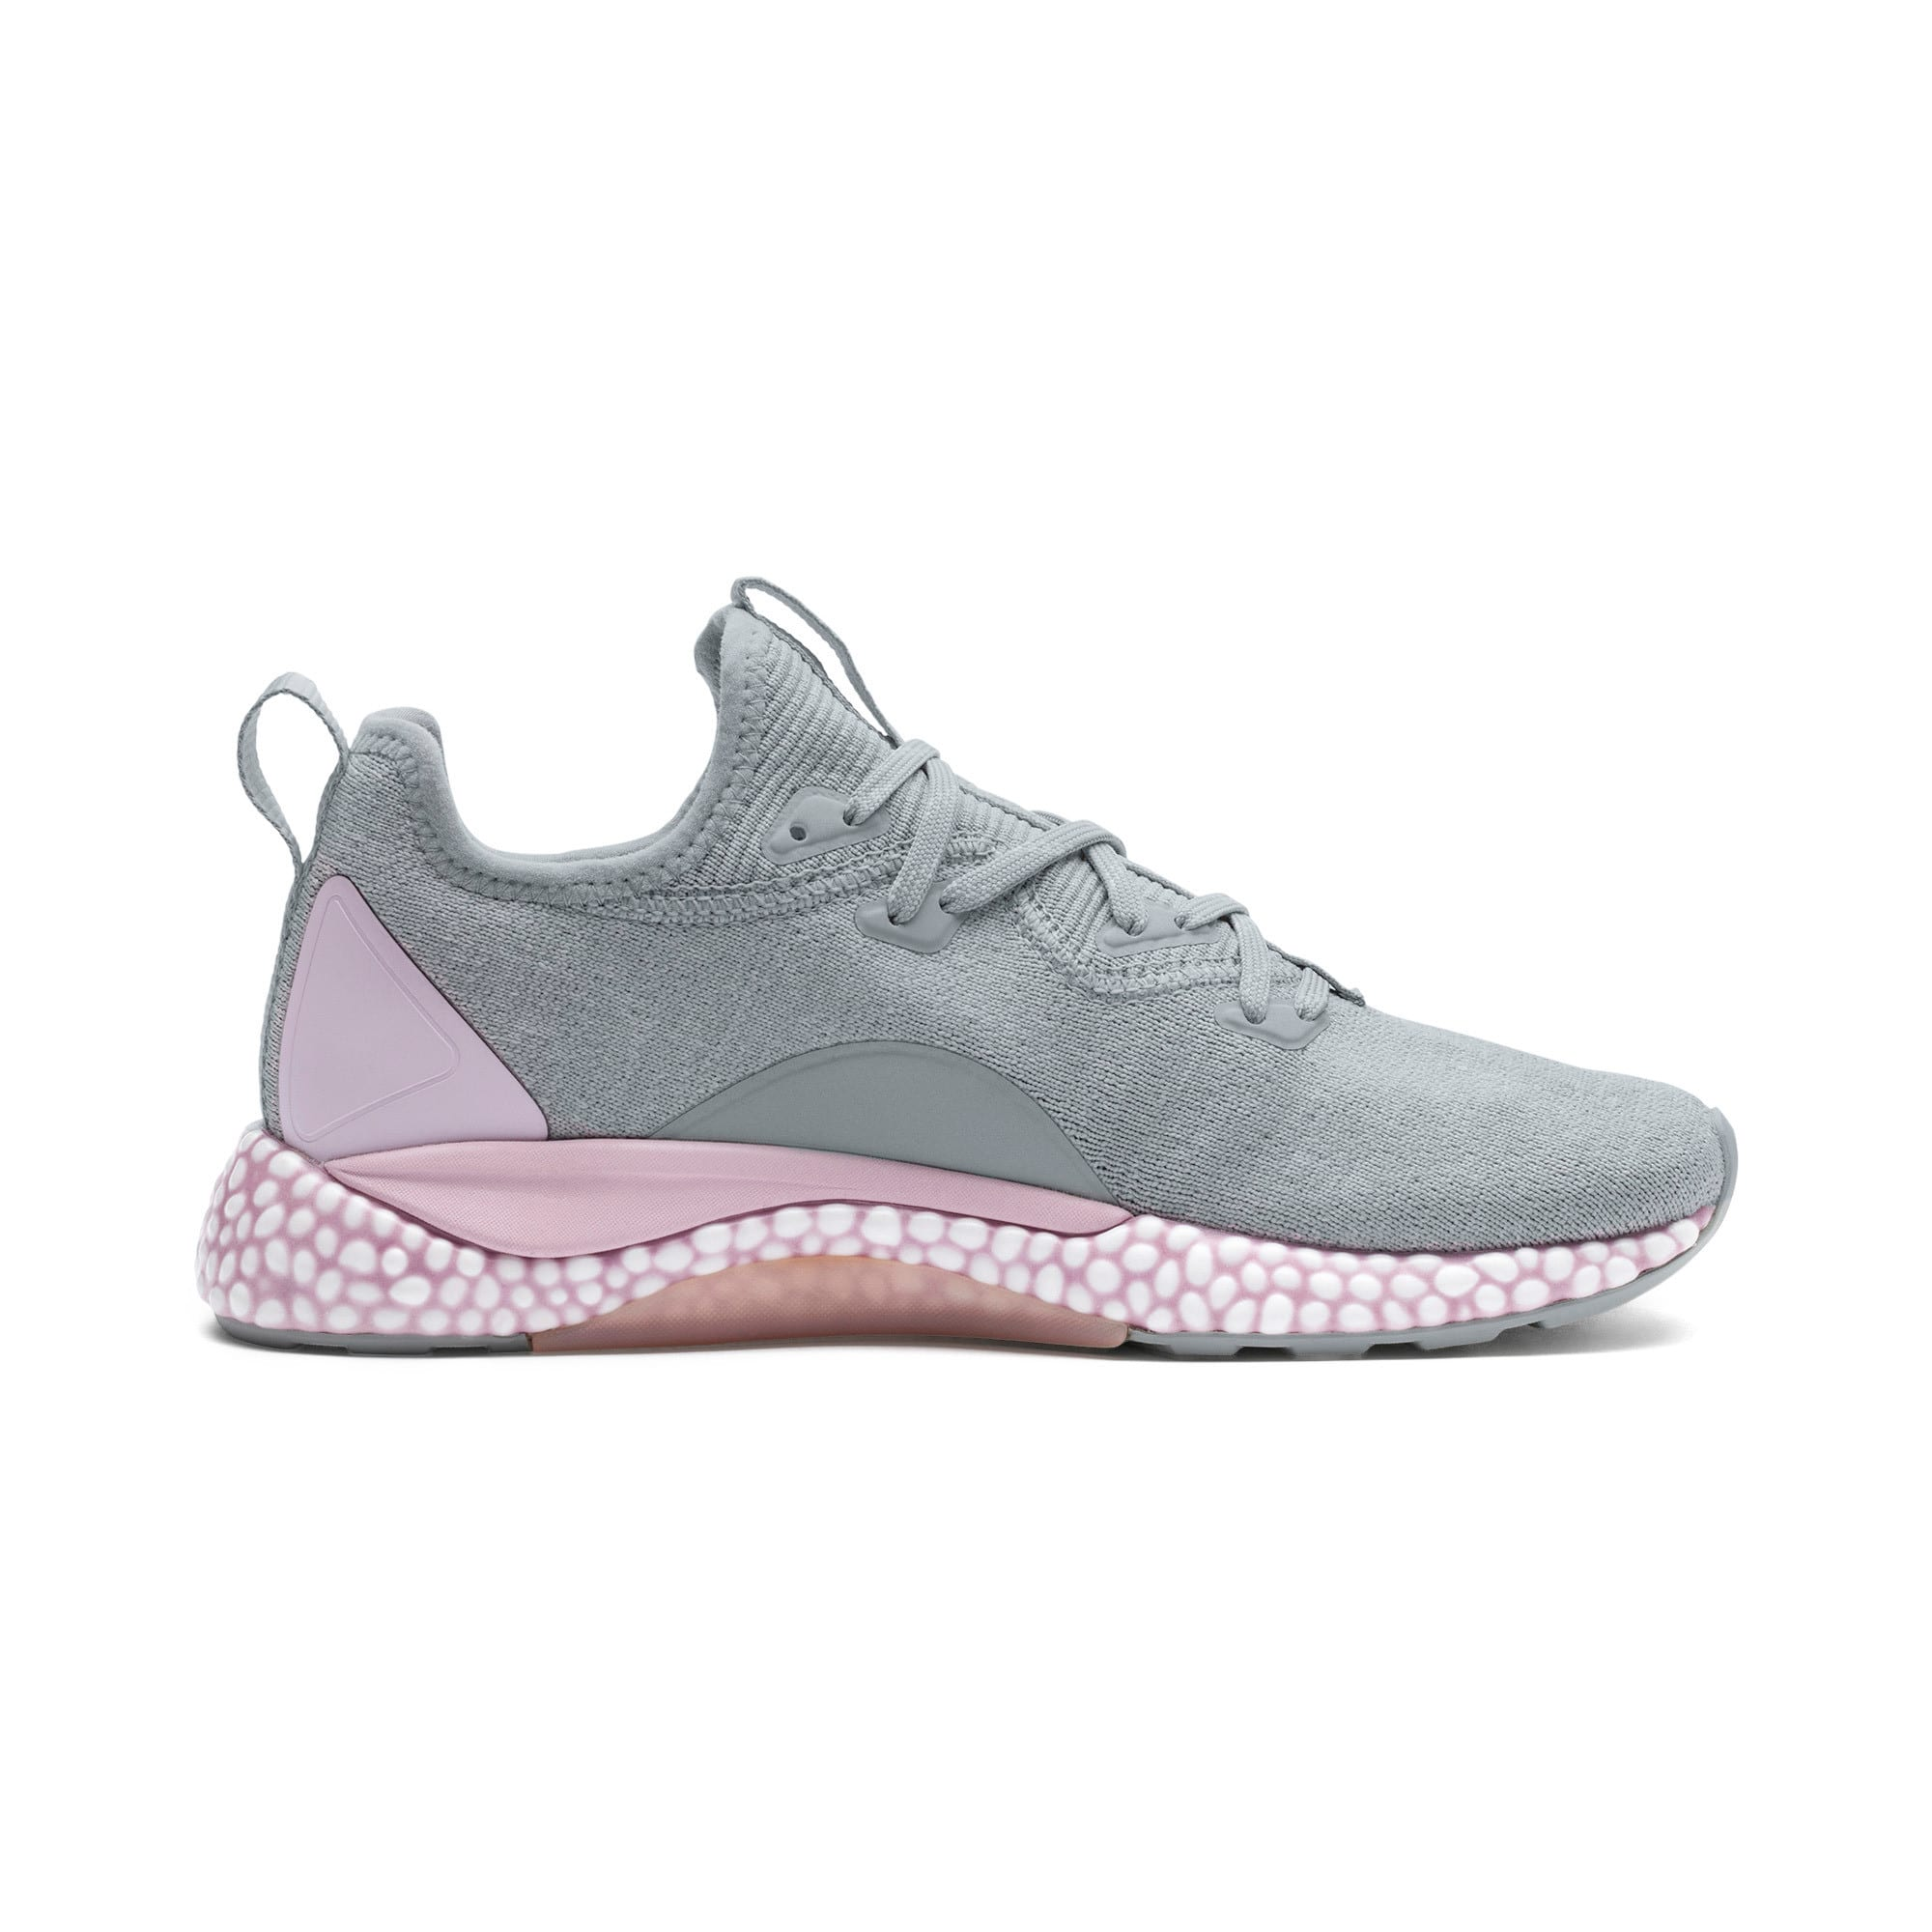 Thumbnail 5 of Hybrid Runner Women's Running Shoes, Quarry-Winsome Orchid, medium-IND